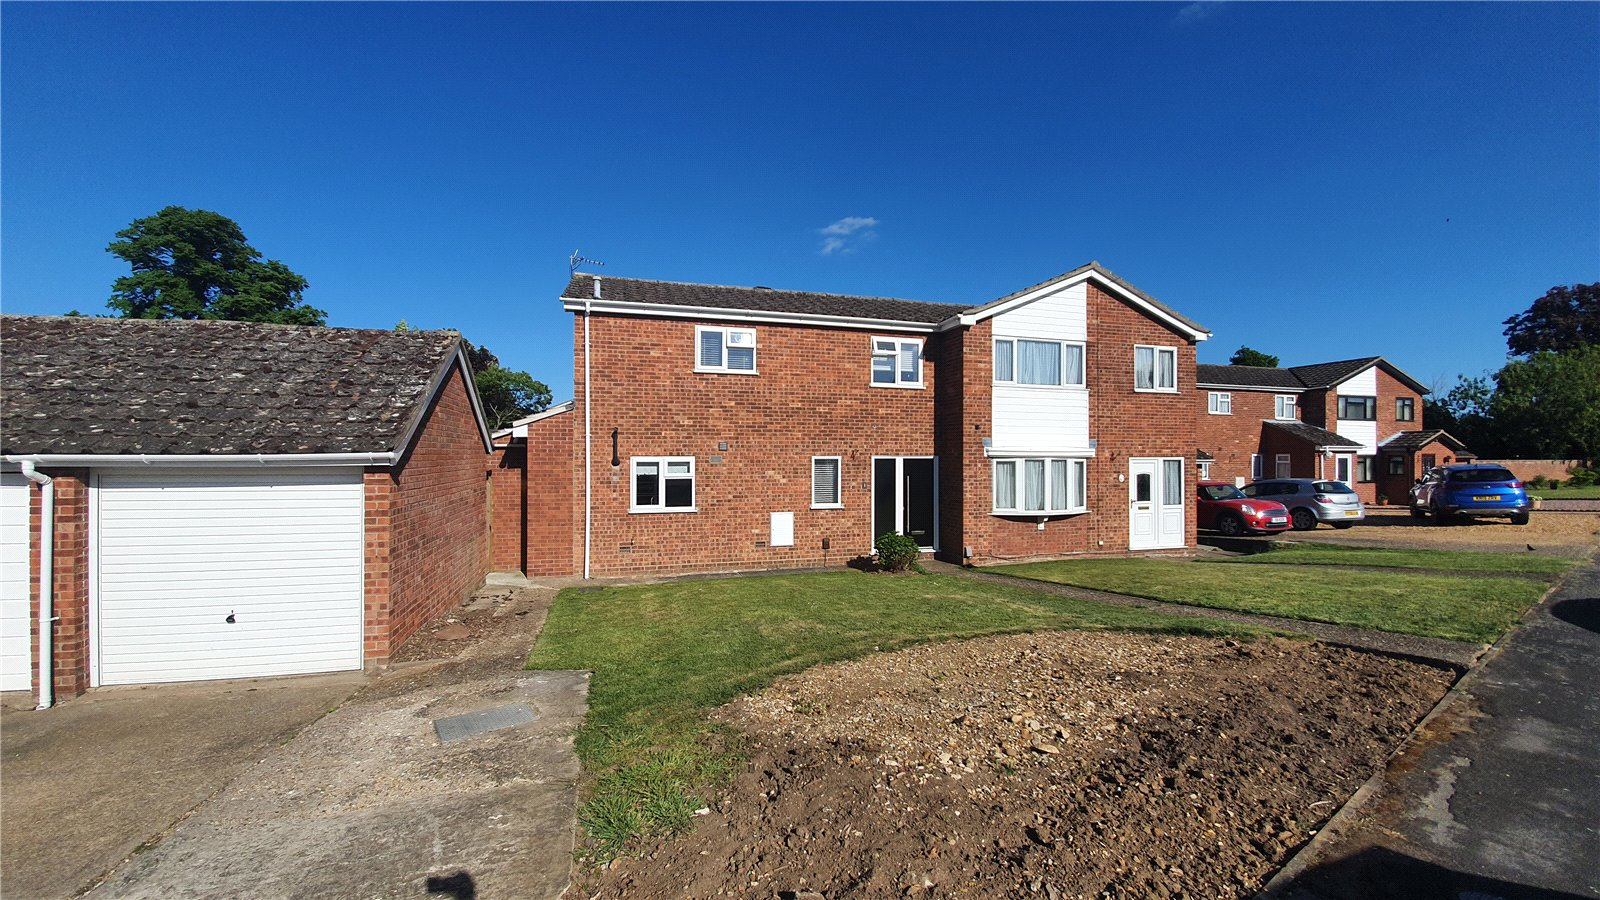 3 bed house for sale in The Sycamores, Little Paxton  - Property Image 14